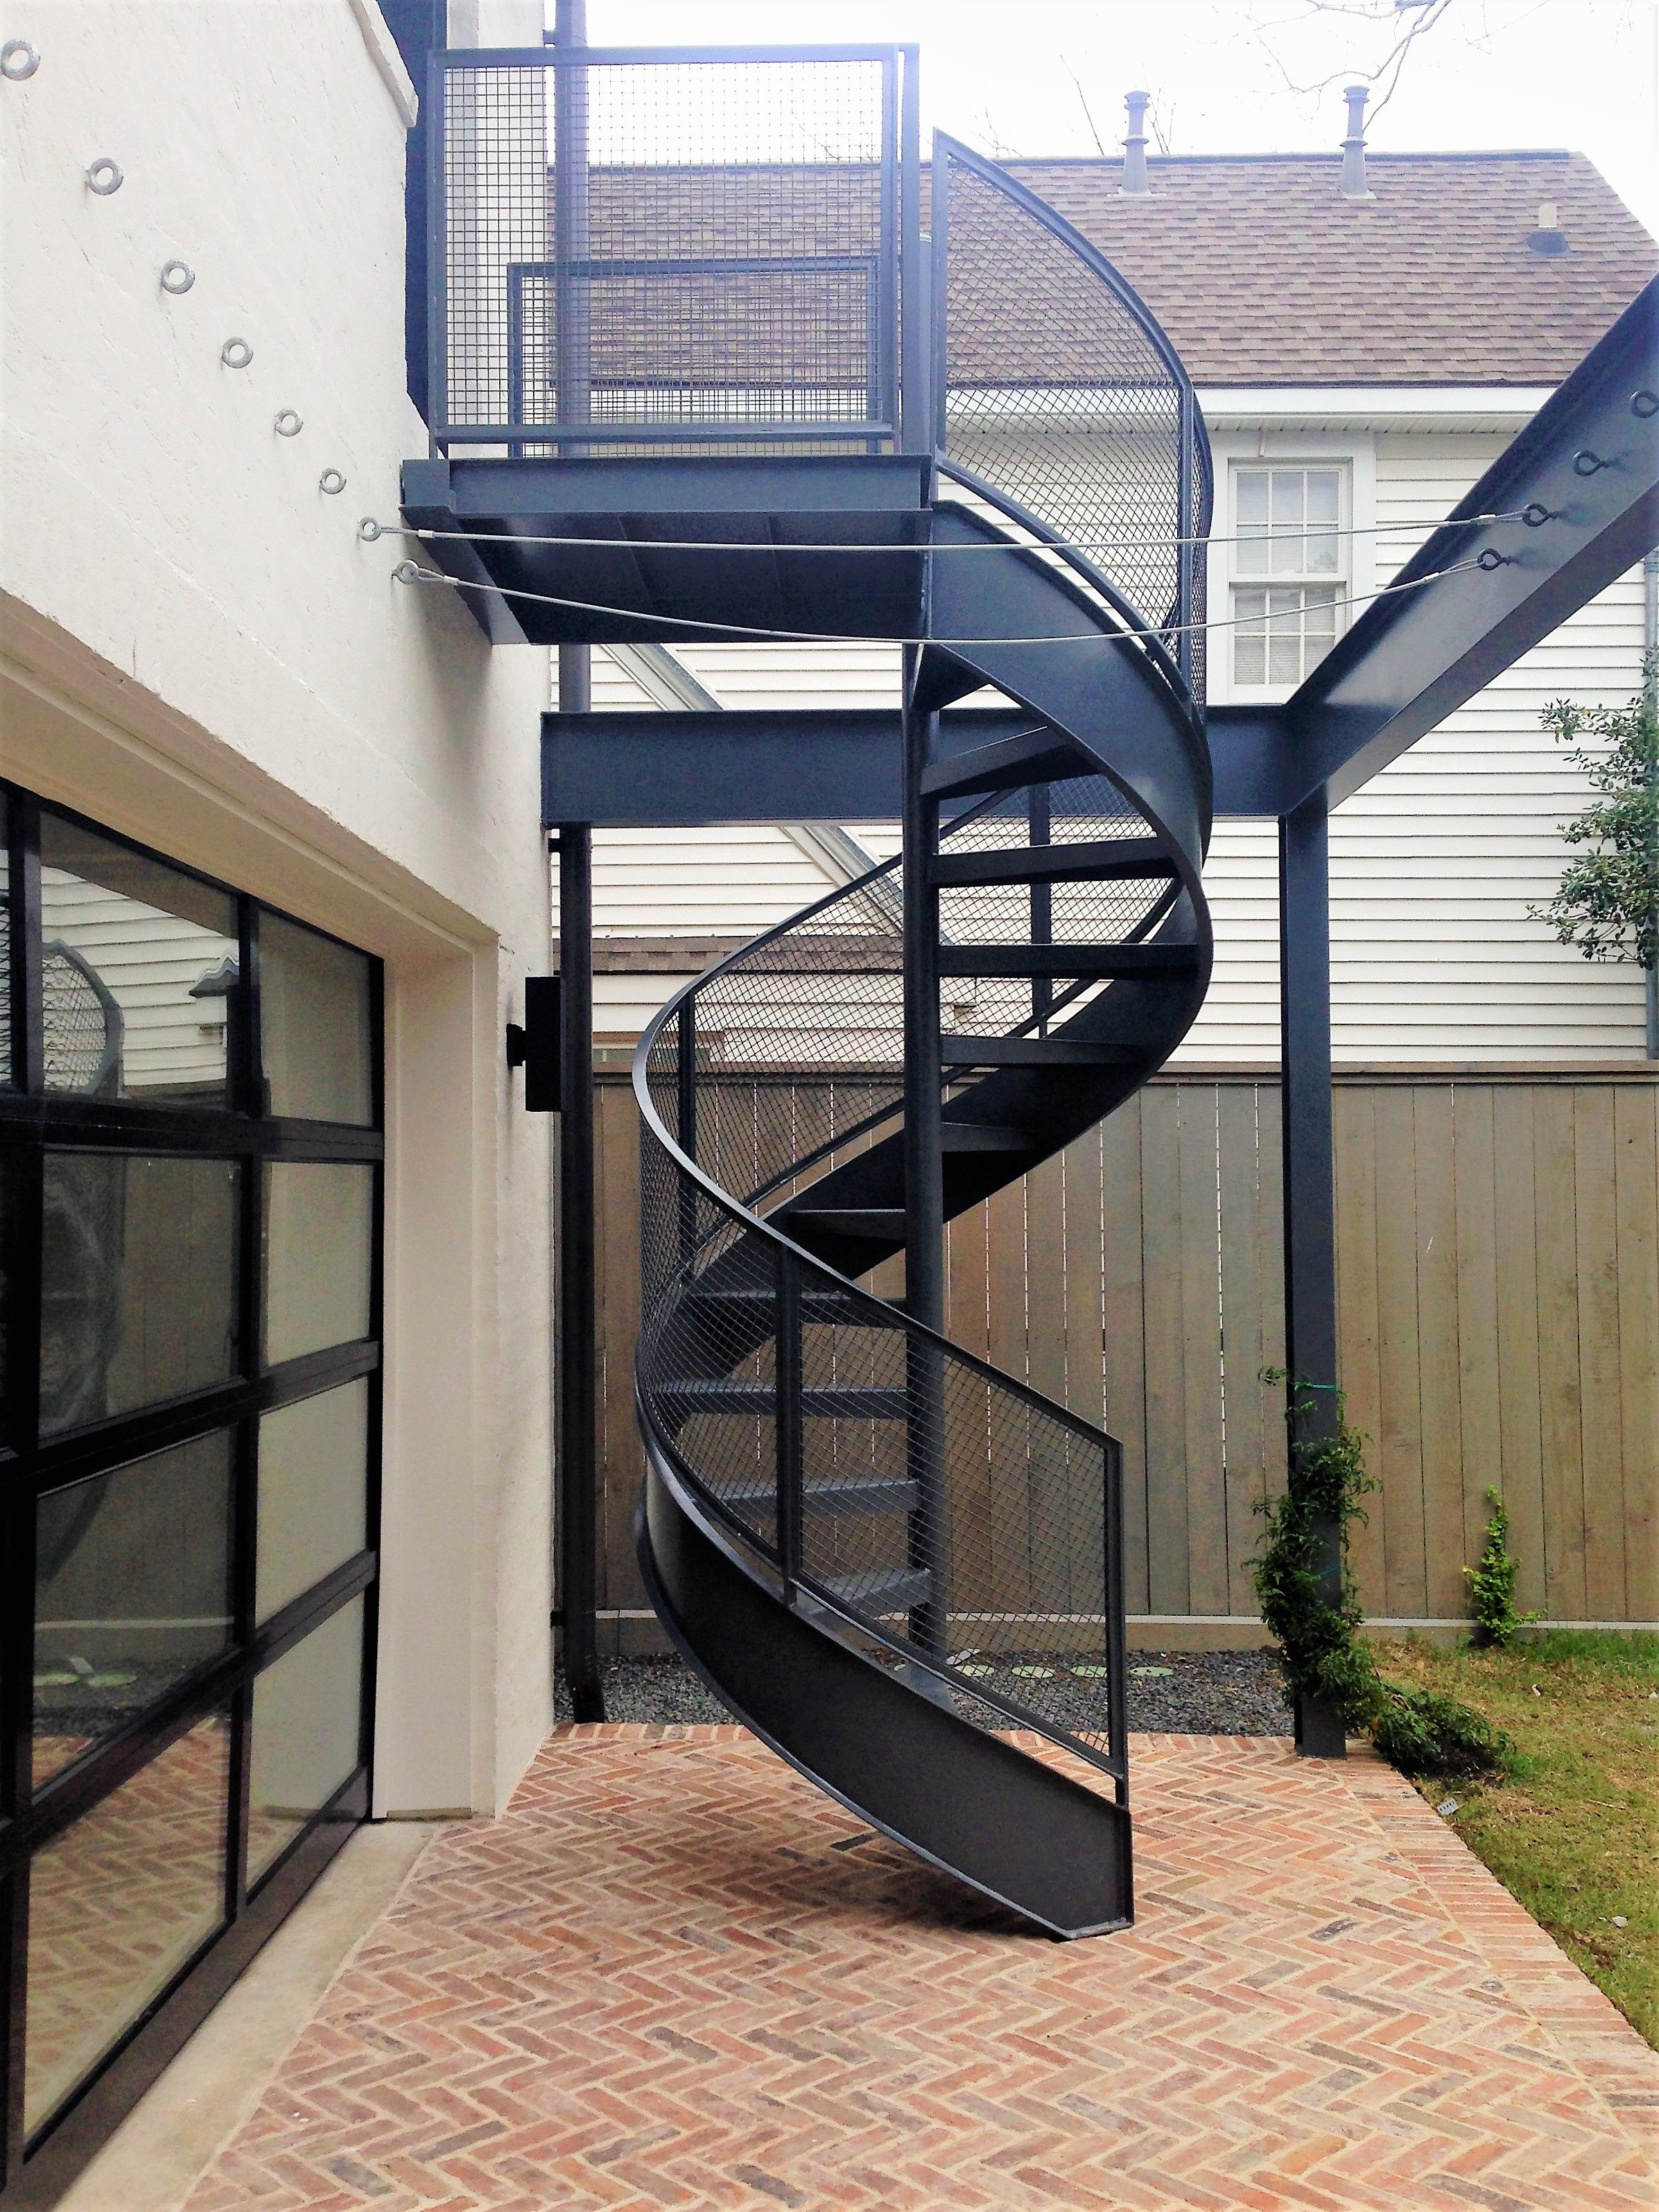 This Is An All Steel Code Compliant Spiral Stair Has A Flat Bar | External Spiral Staircase For Sale | Stair Treads | Staircase Ideas | Steel Spiral | Metal Spiral | Staircase Railings